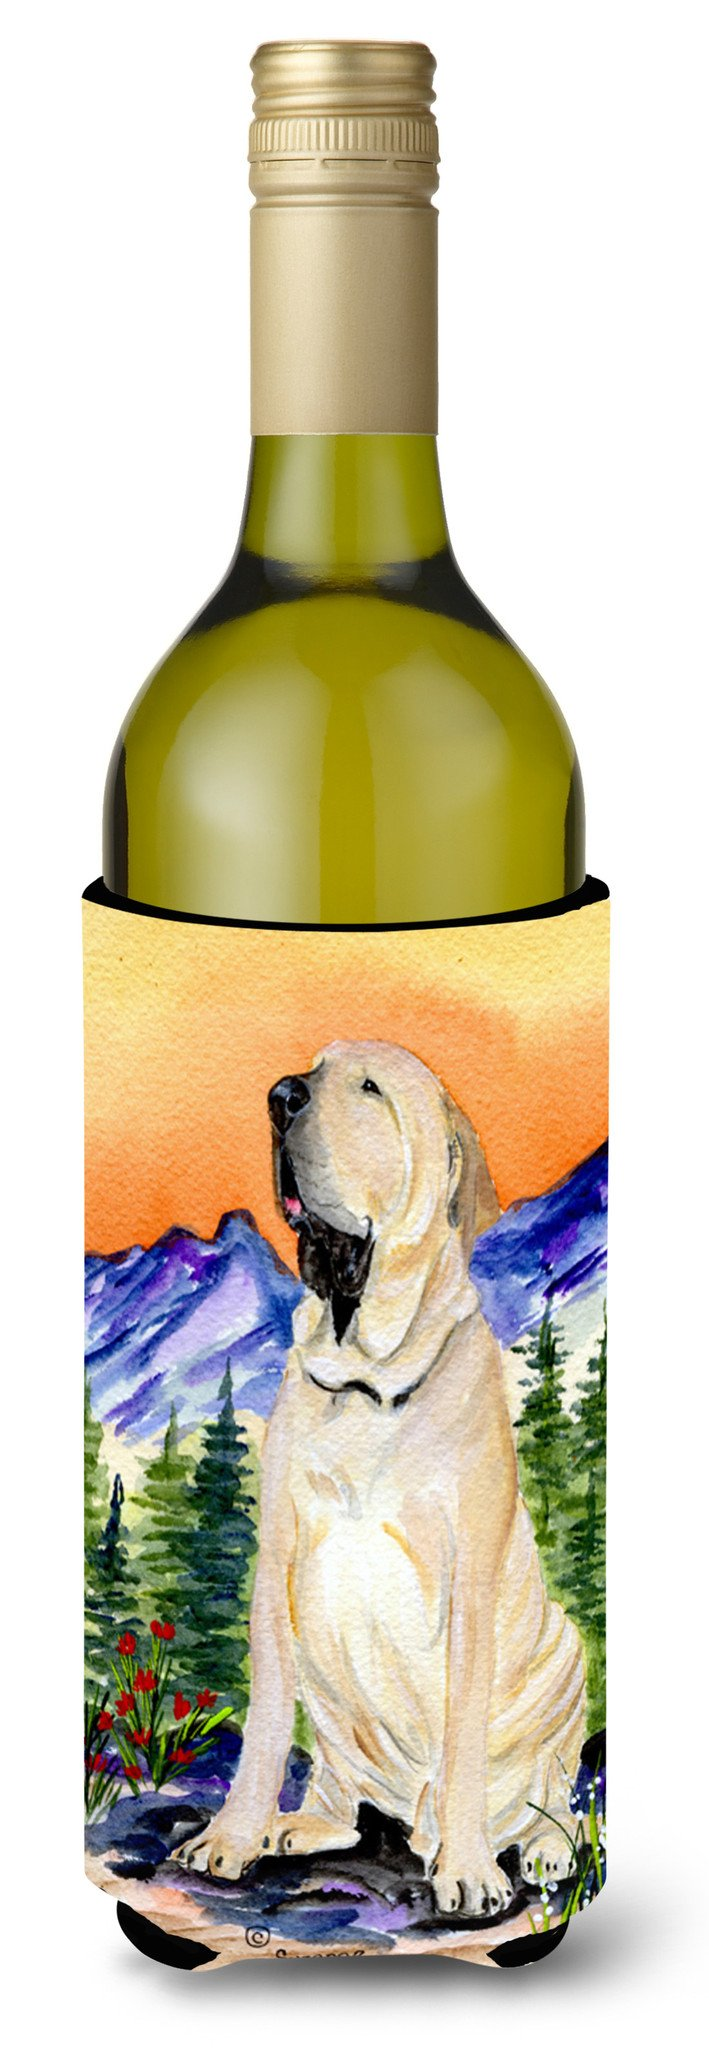 Buy this Brazilian Mastiff  / Fila Brasileiro Wine Bottle Beverage Insulator Beverage Insulator Hugger